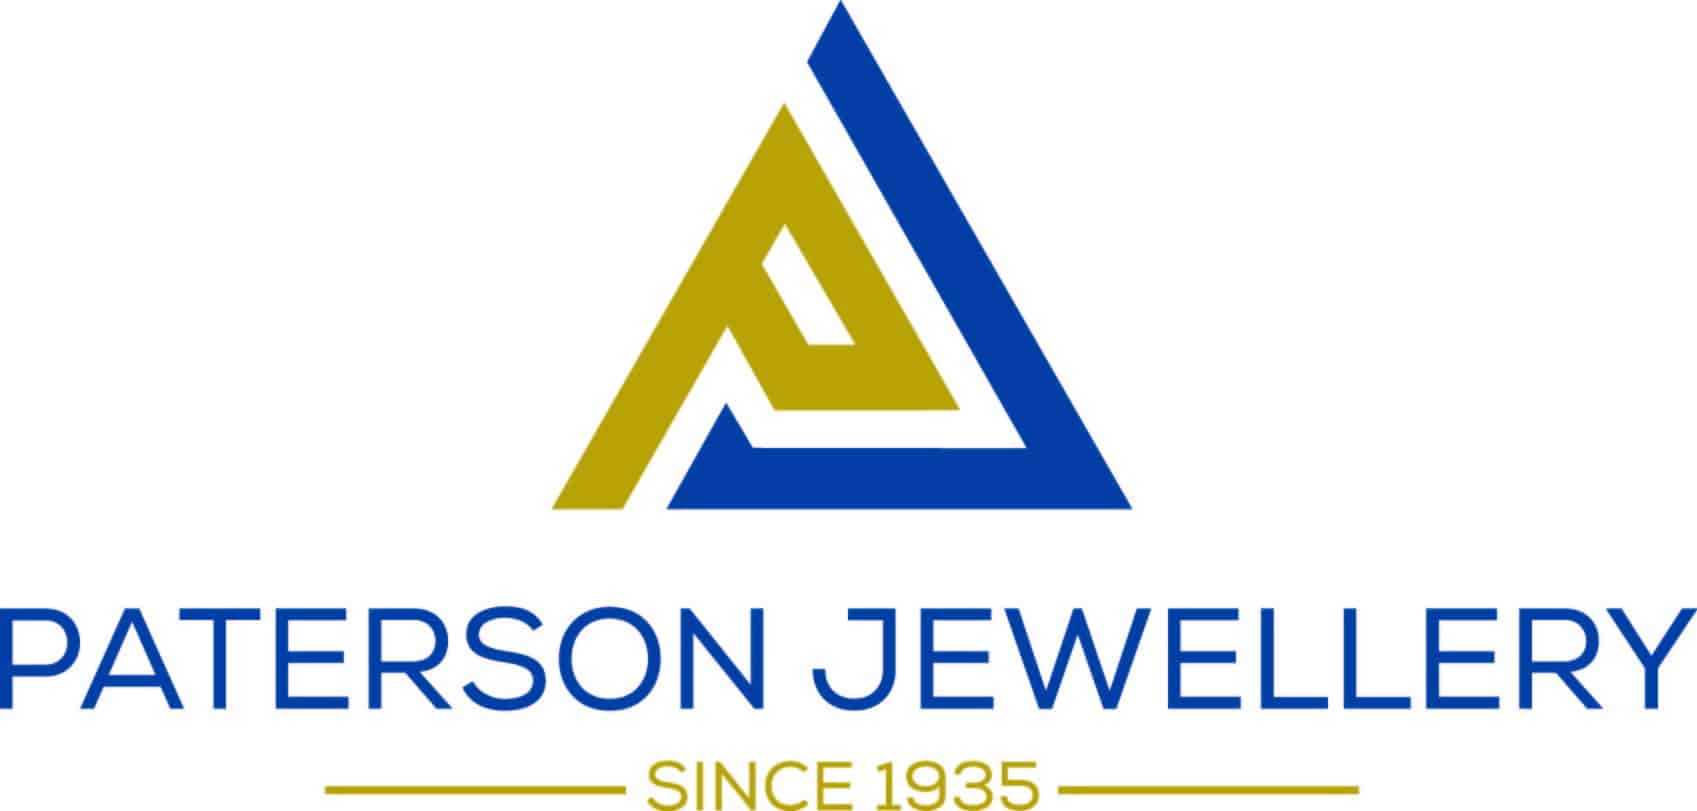 Paterson Jewellery